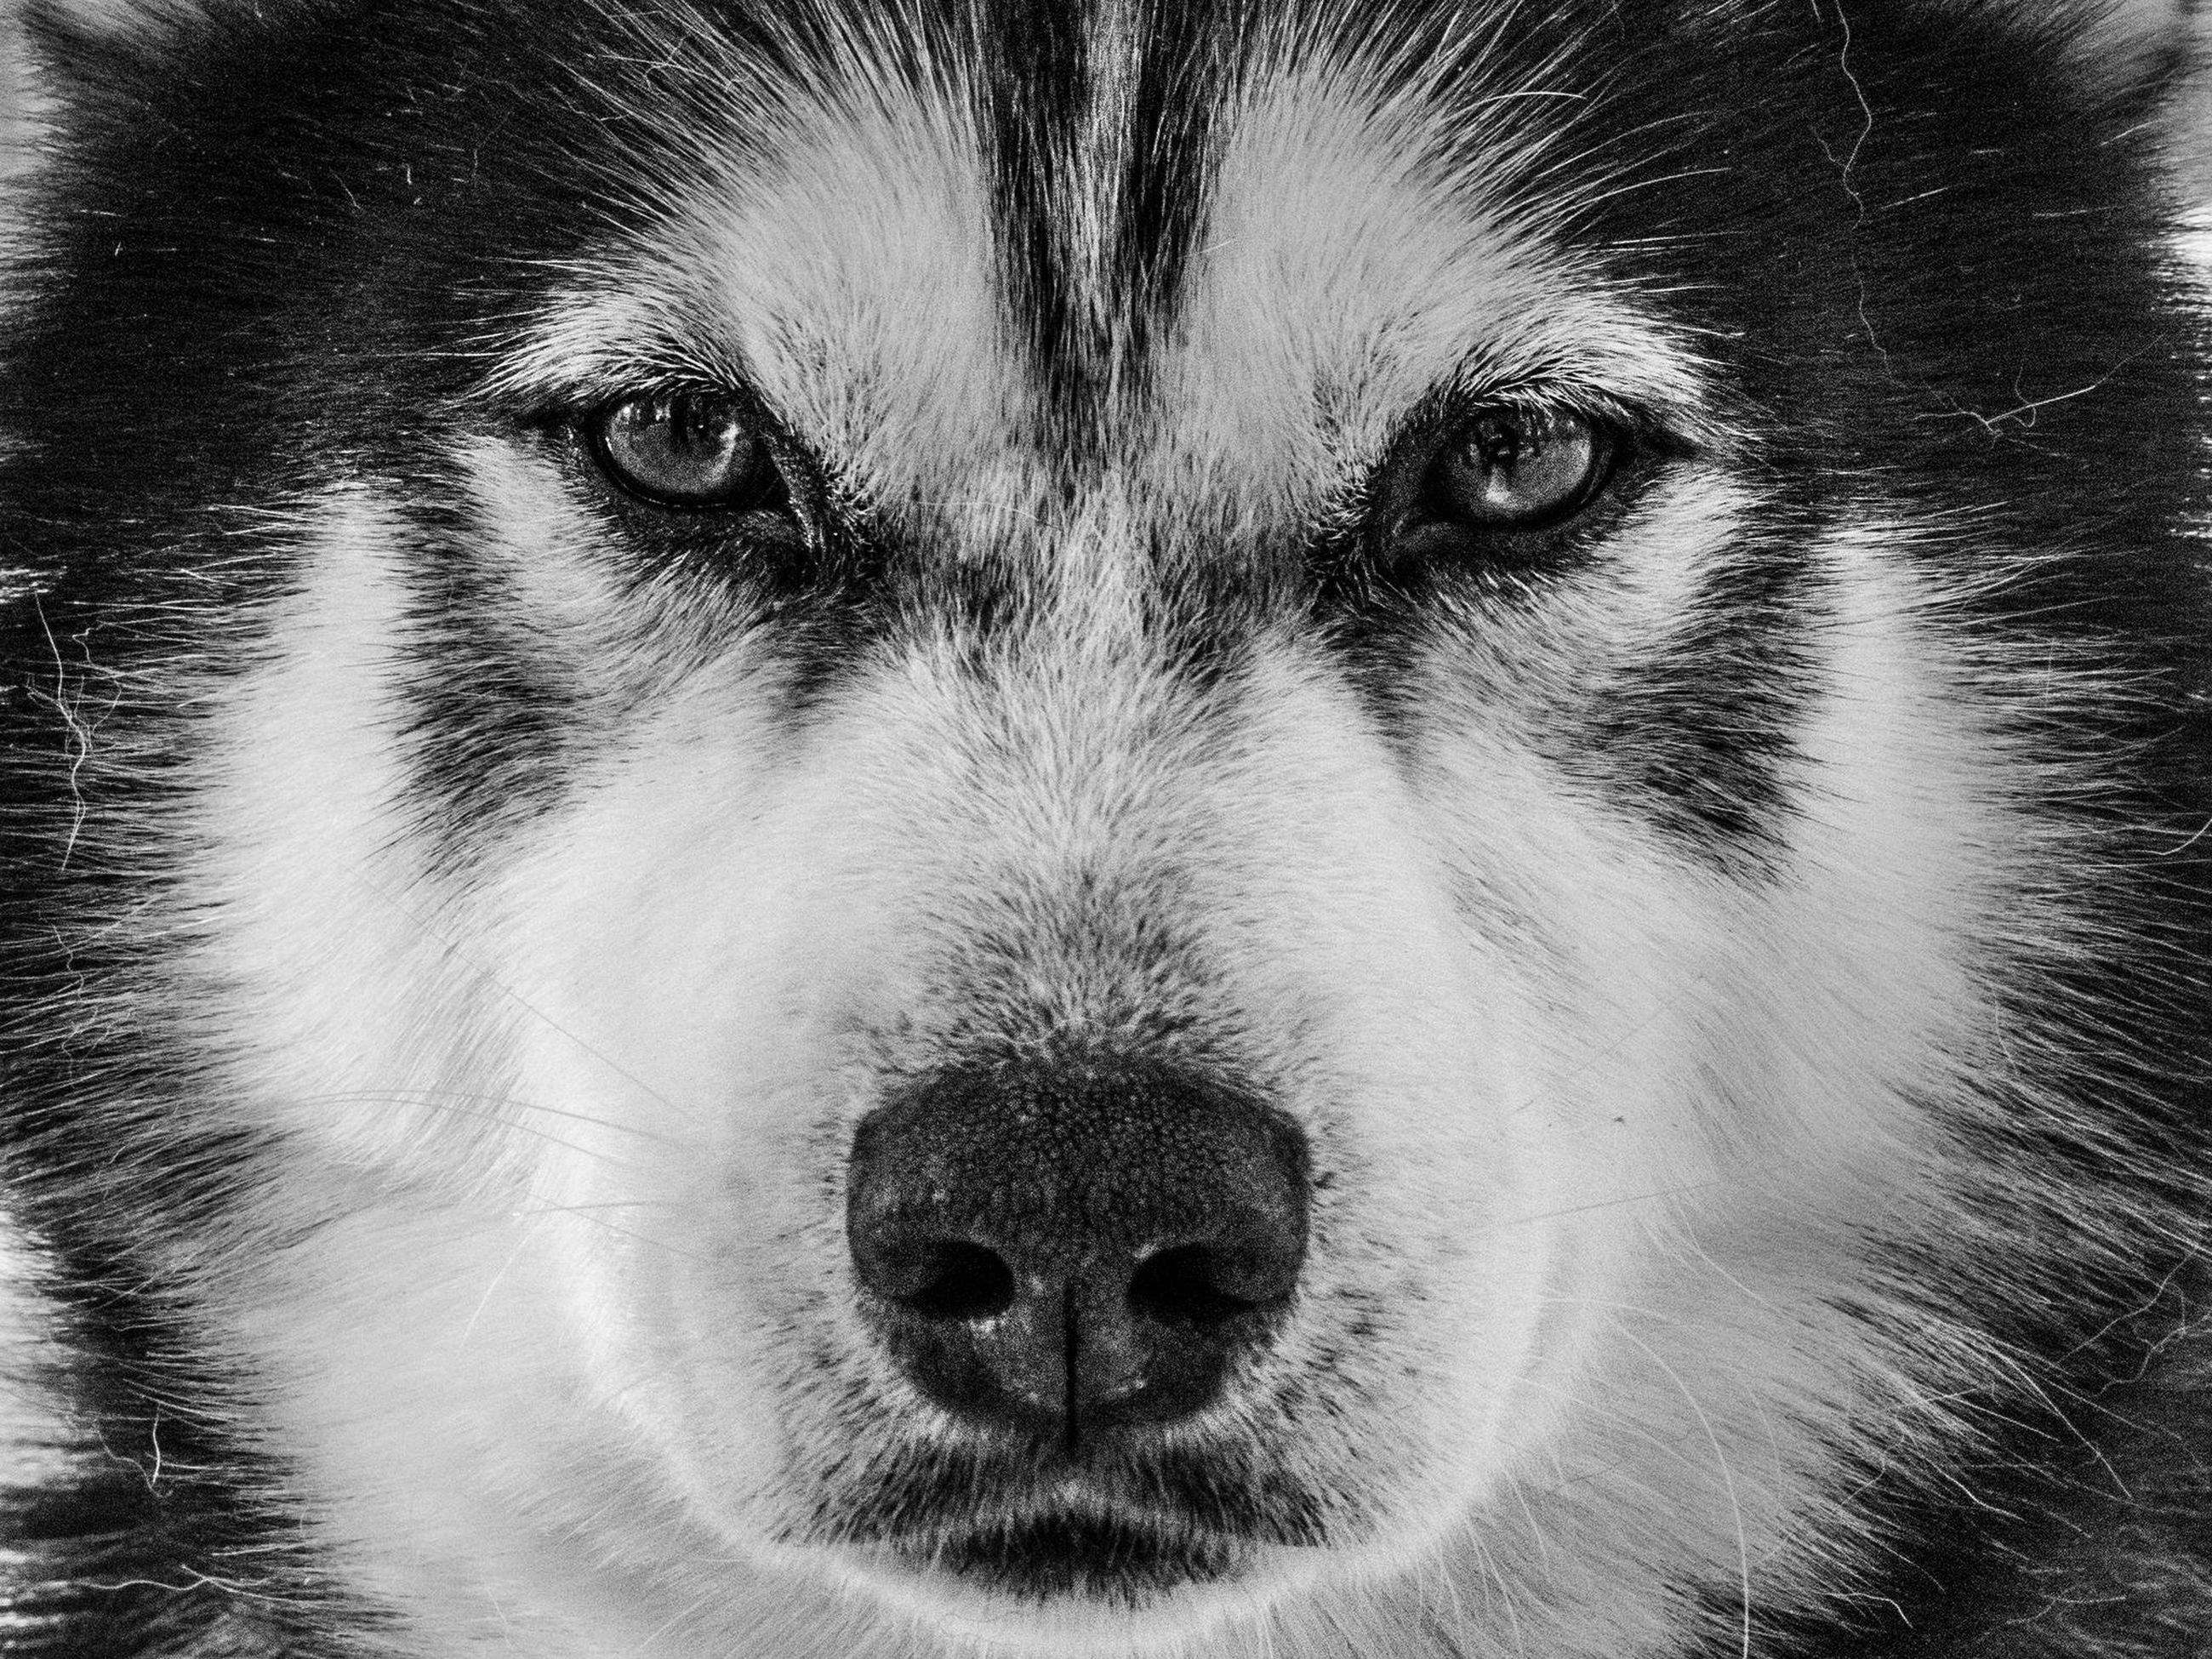 pets, one animal, animal themes, domestic animals, mammal, portrait, close-up, looking at camera, animal head, dog, animal body part, animal eye, black color, snout, whisker, staring, no people, front view, focus on foreground, alertness